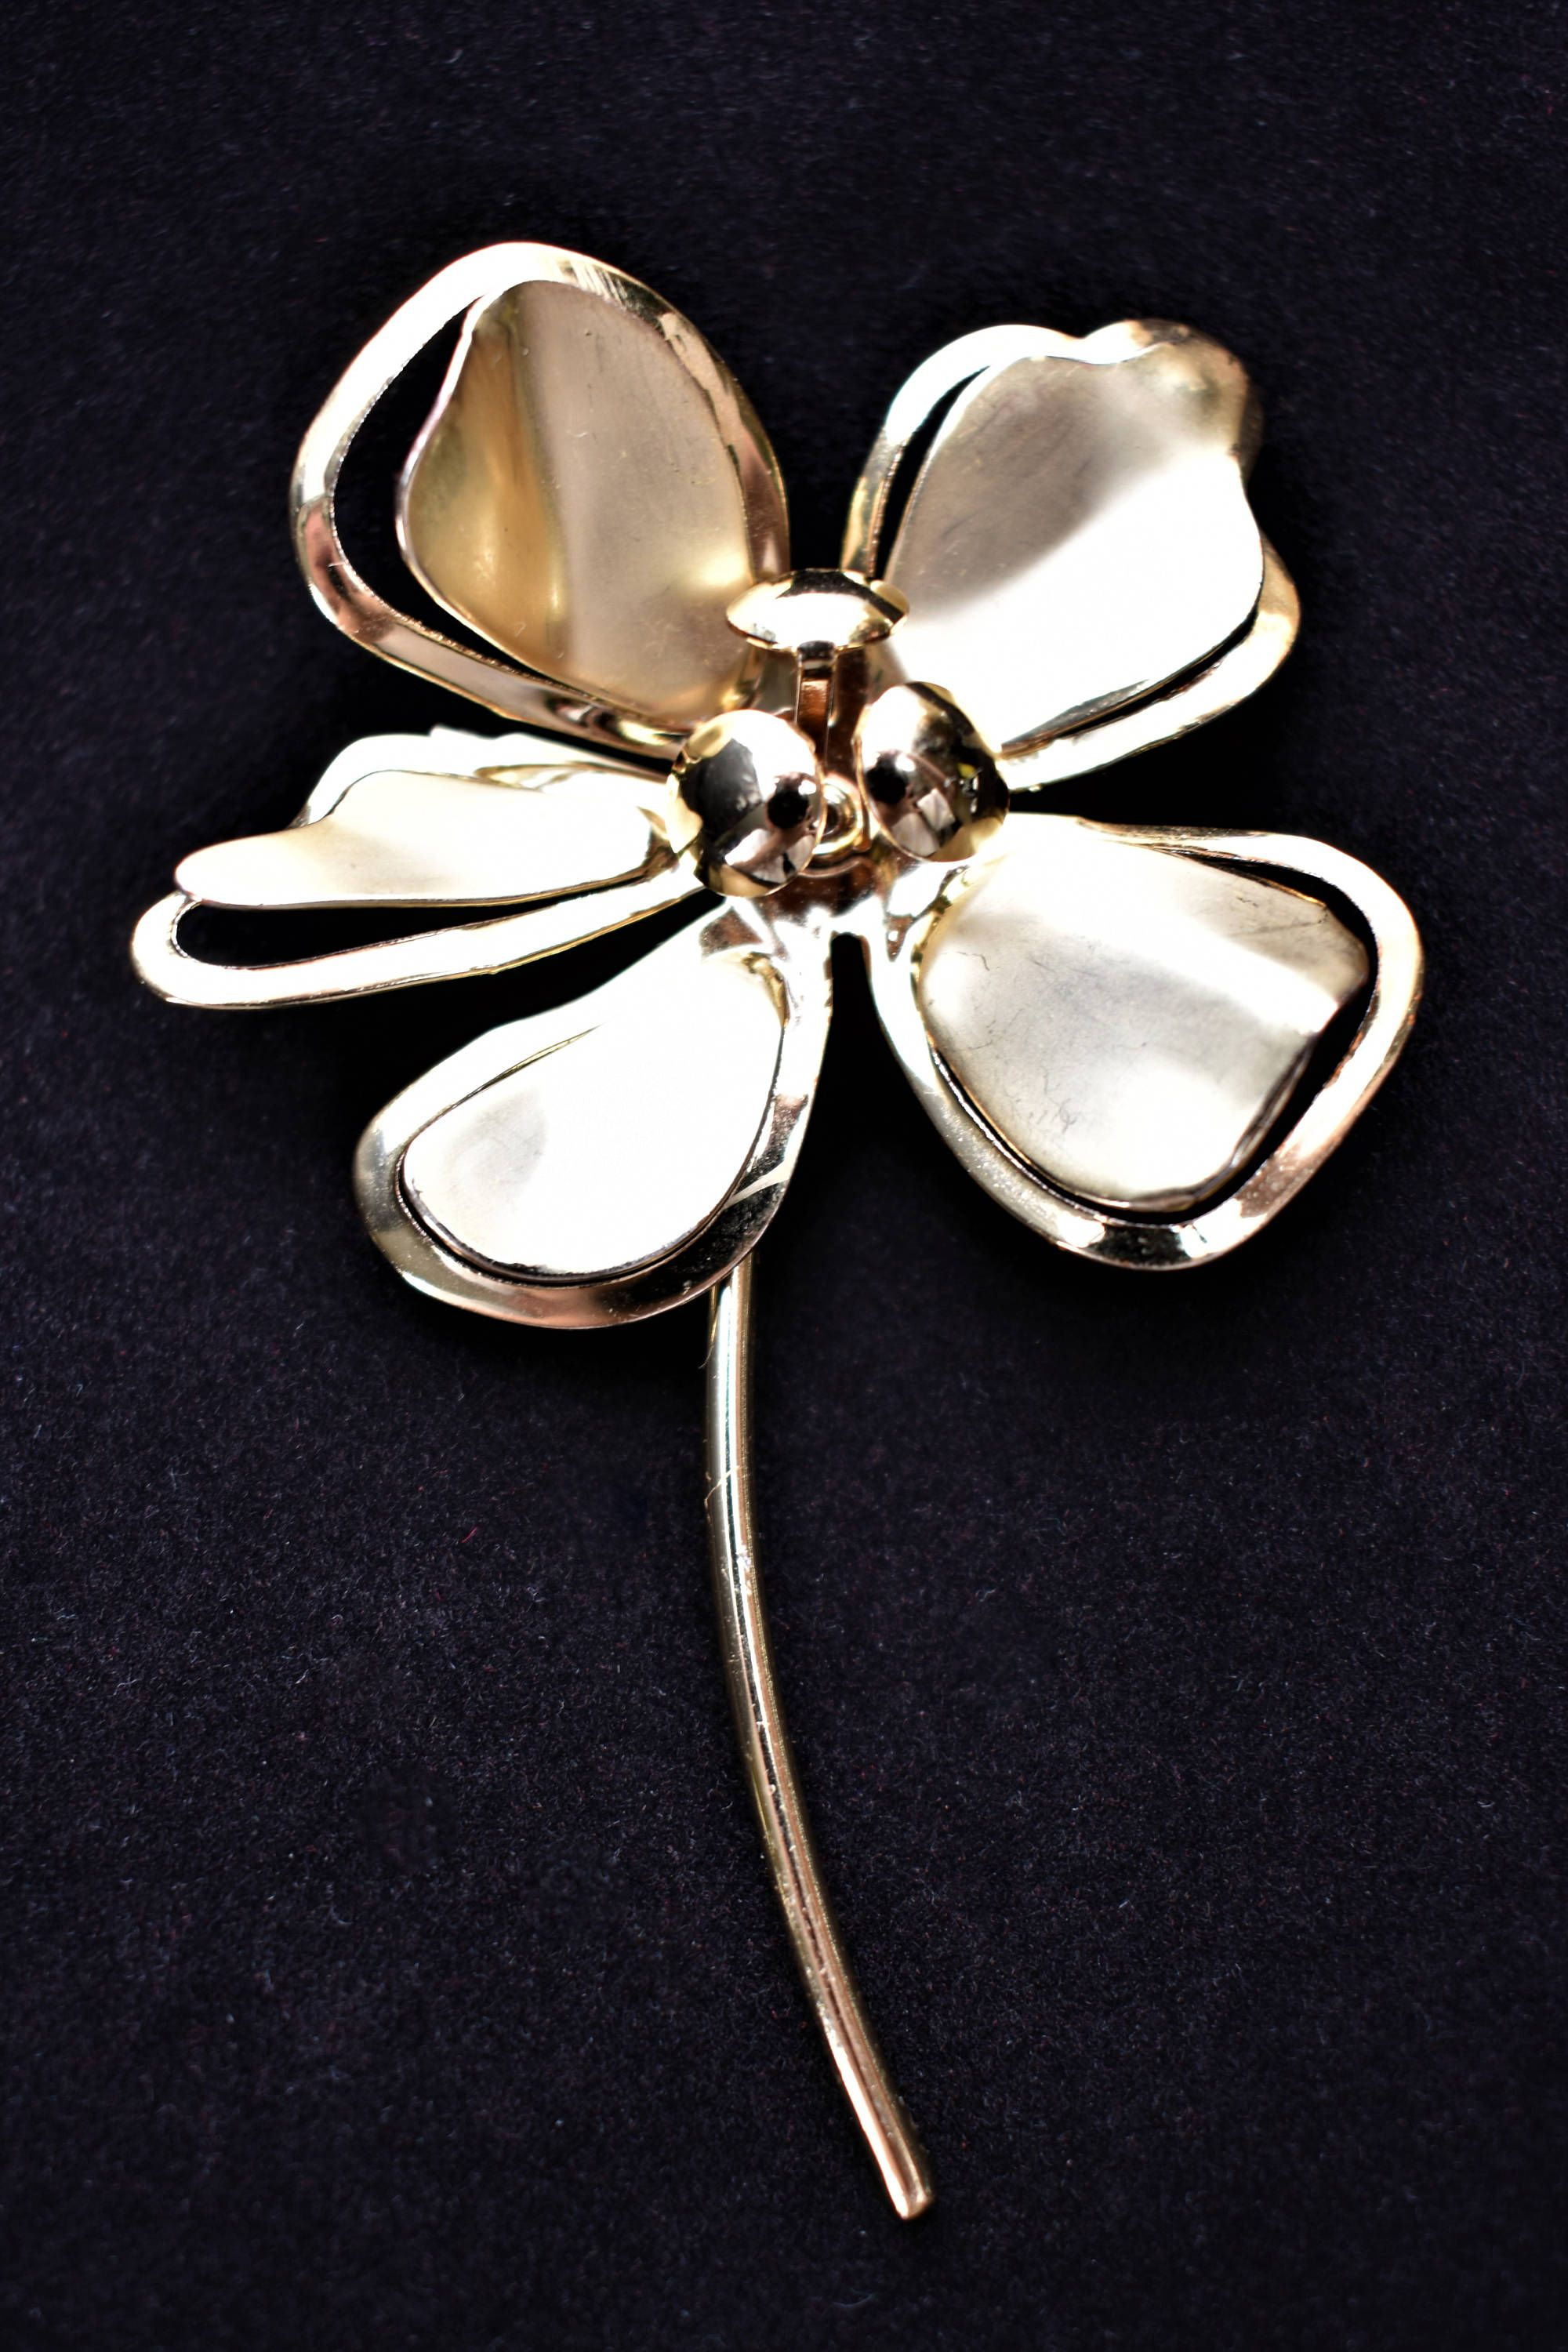 9140b29ba44 Vintage Metal Flower Statement Brooch Coat Sweater Pin Gold Tone Mid  Century Retro Costume Estate Jewelry 3.5